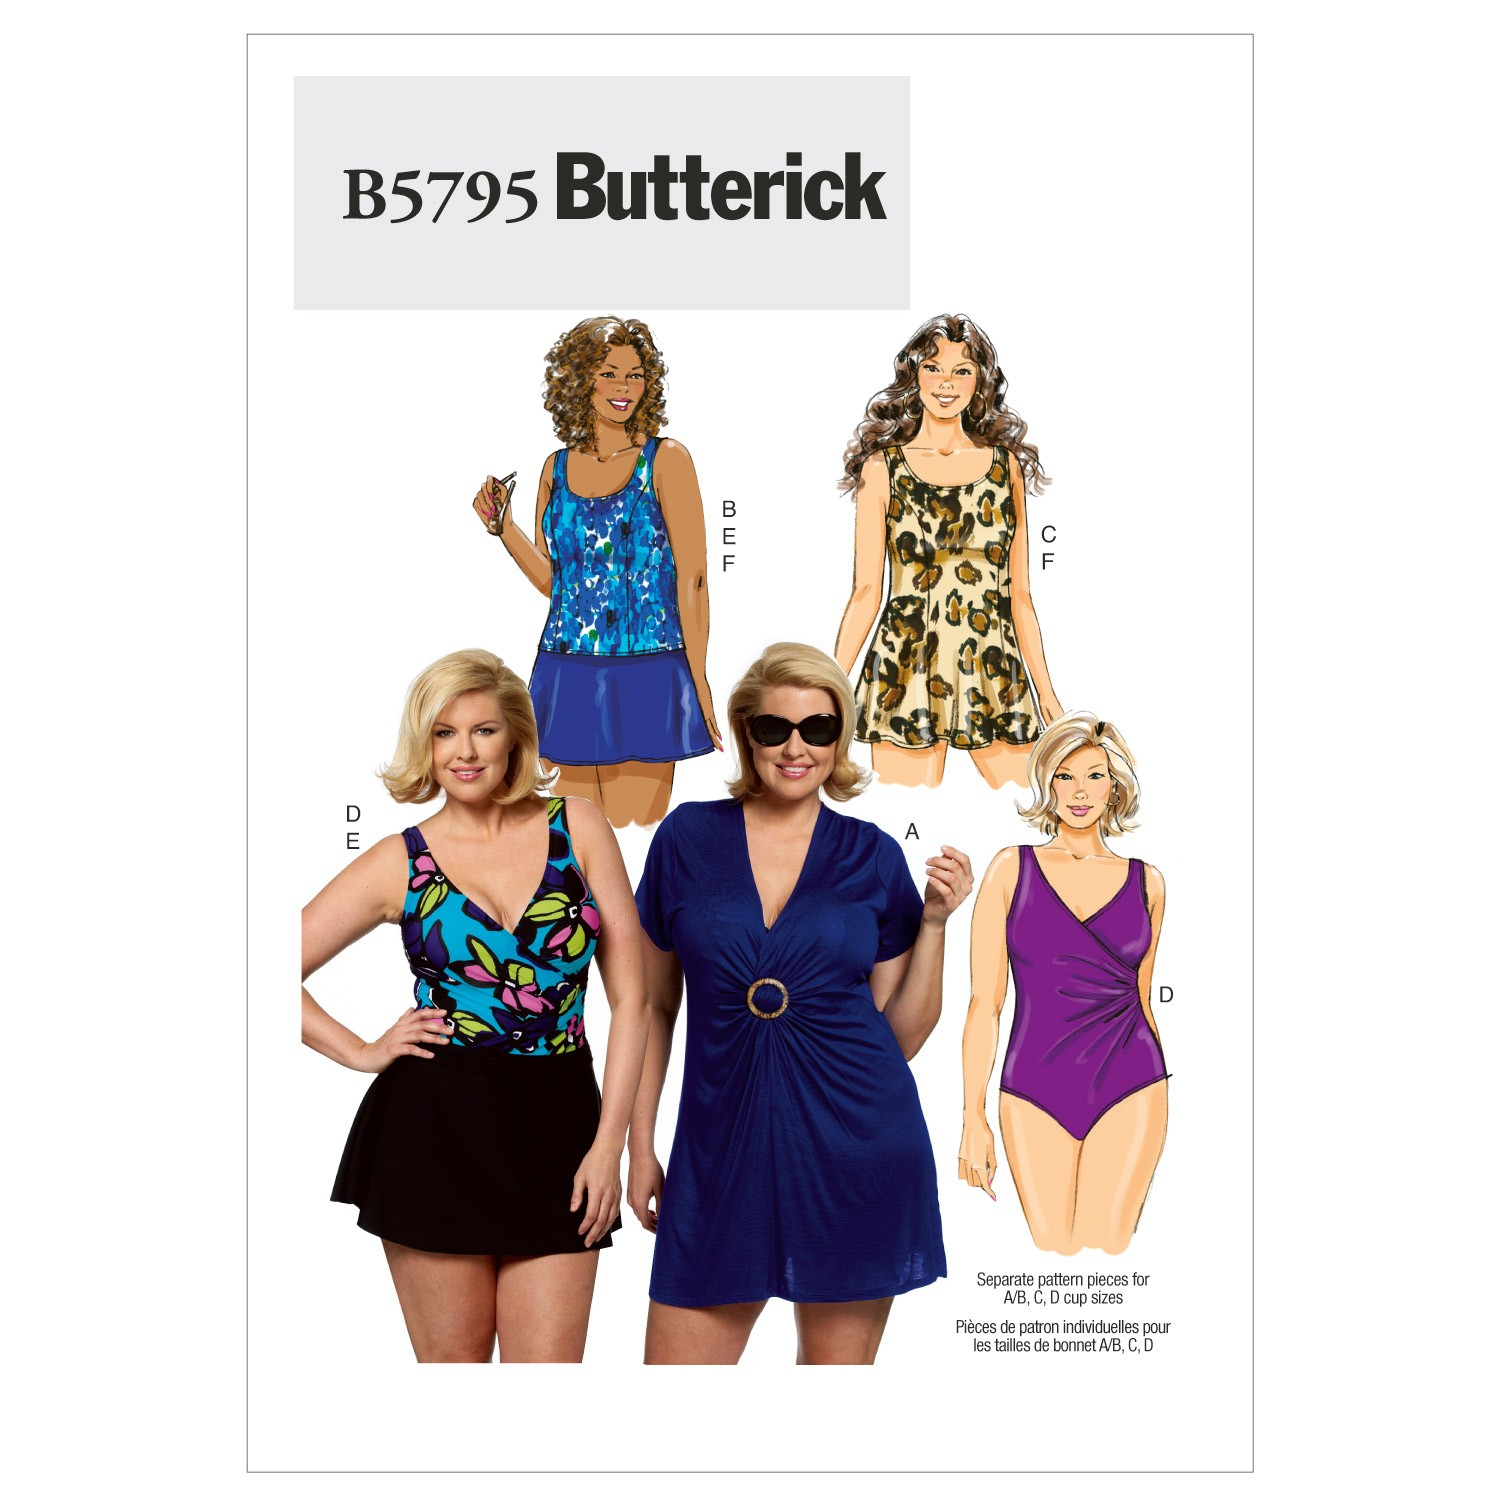 Butterick Sewing Pattern 5795 Women's Cover Up Top Swimsuit Skirt & Briefs